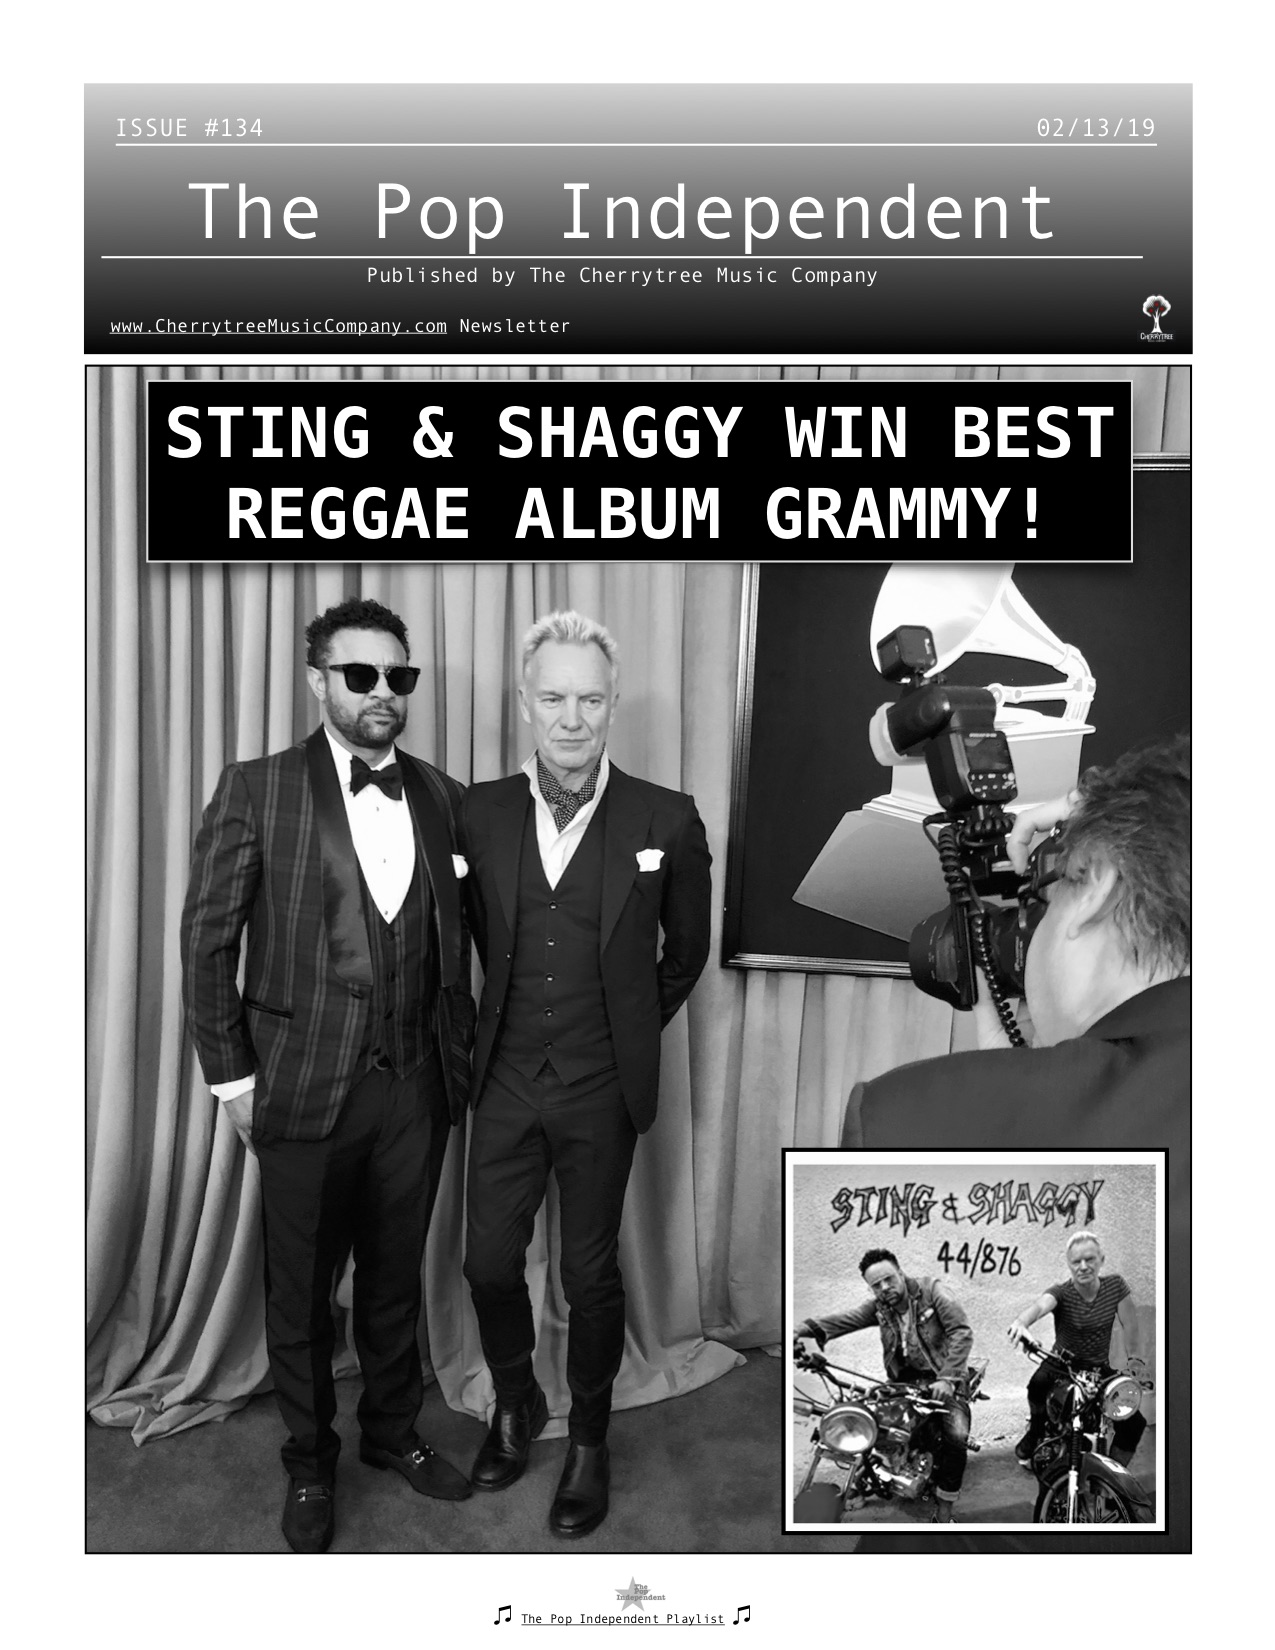 The Pop Independent, issue 134